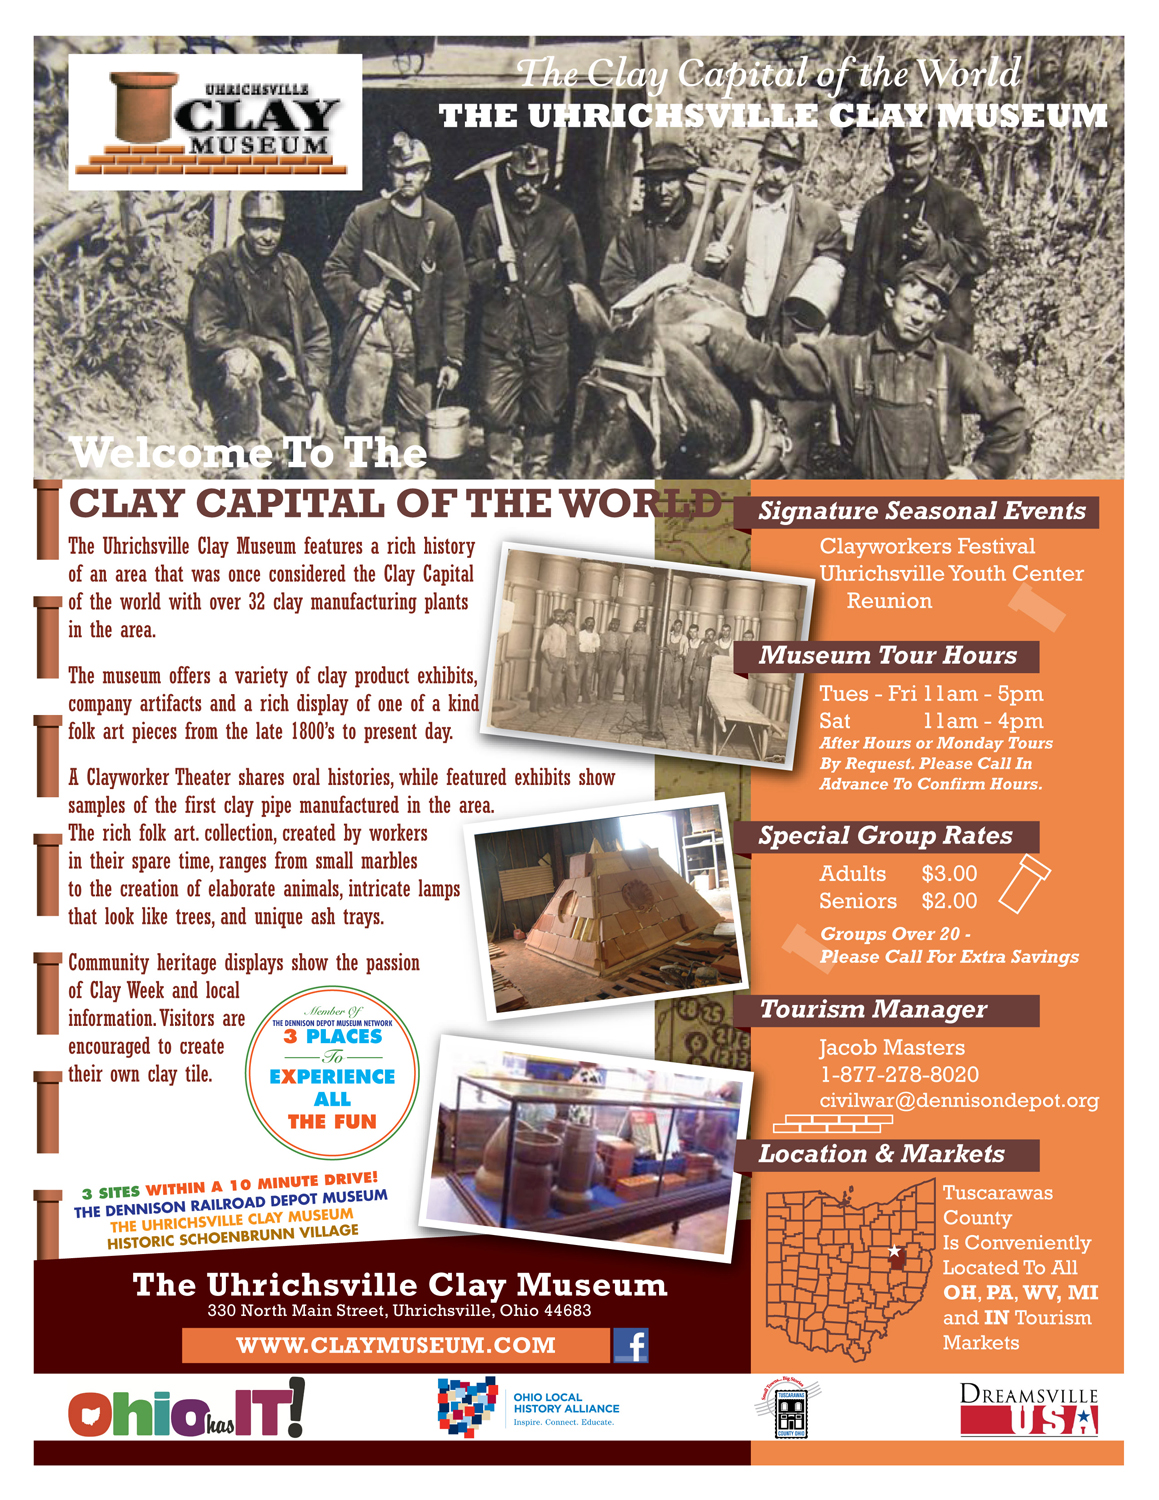 ClayMuseum_Profile Sheet